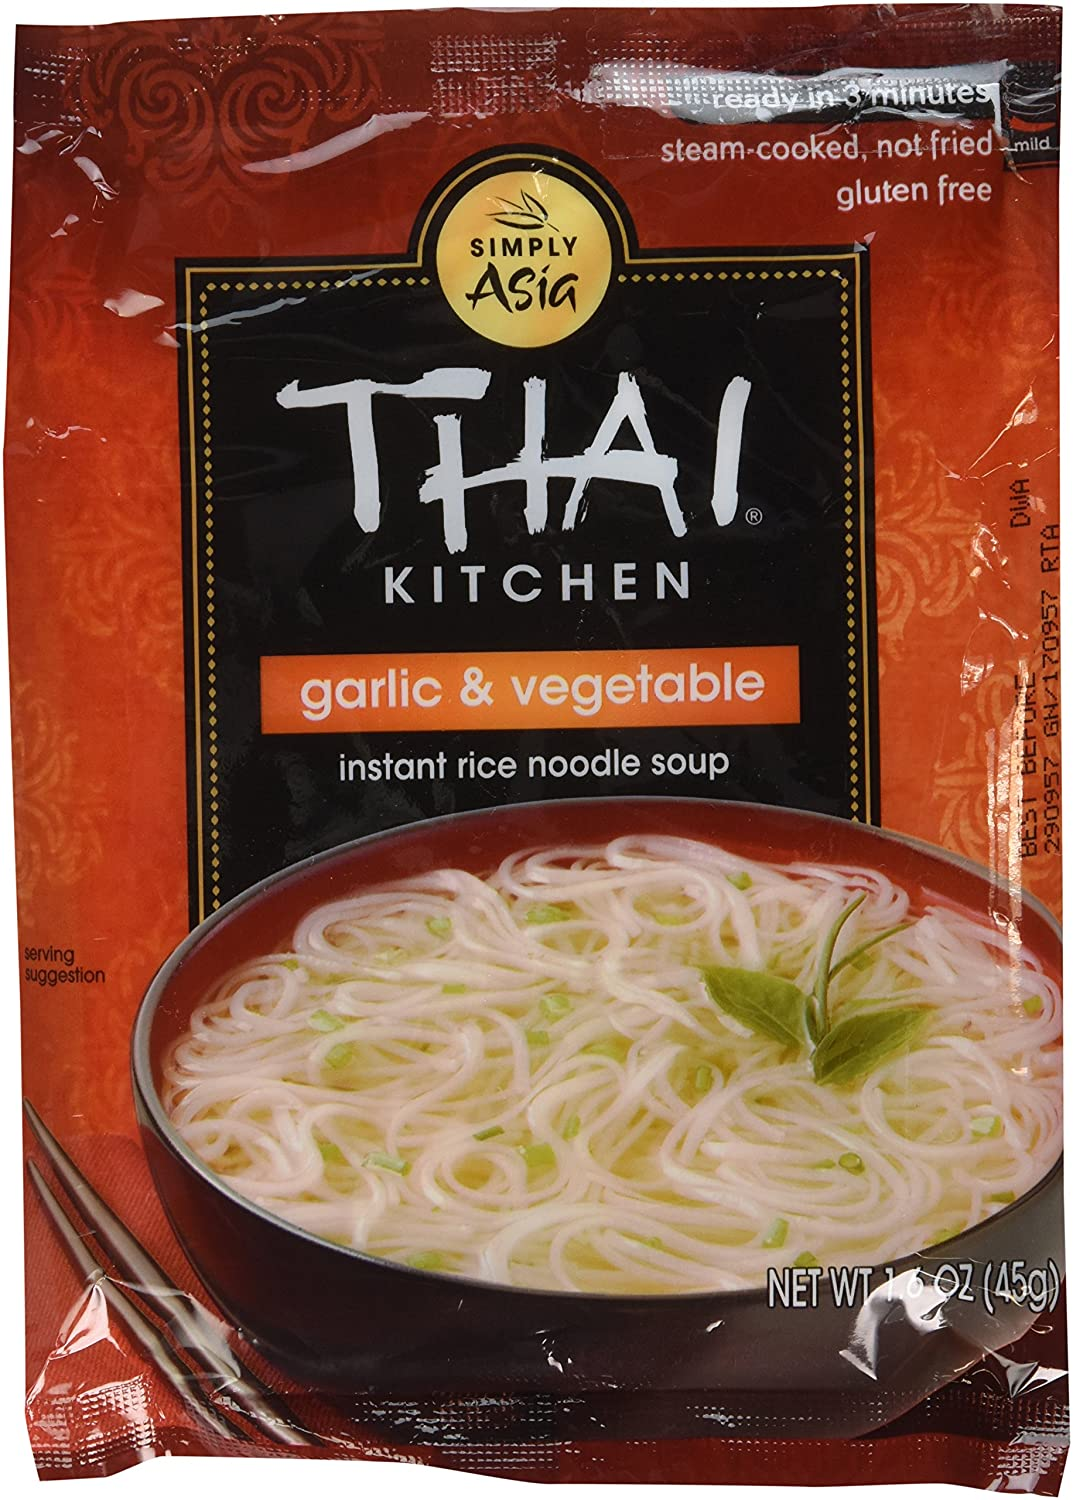 Amazon Com Thai Kitchen Instant Rice Noodle Soup Garlic And Vegetables 1 6 Ounce Unit Pack Of 12 Grocery Gourmet Food